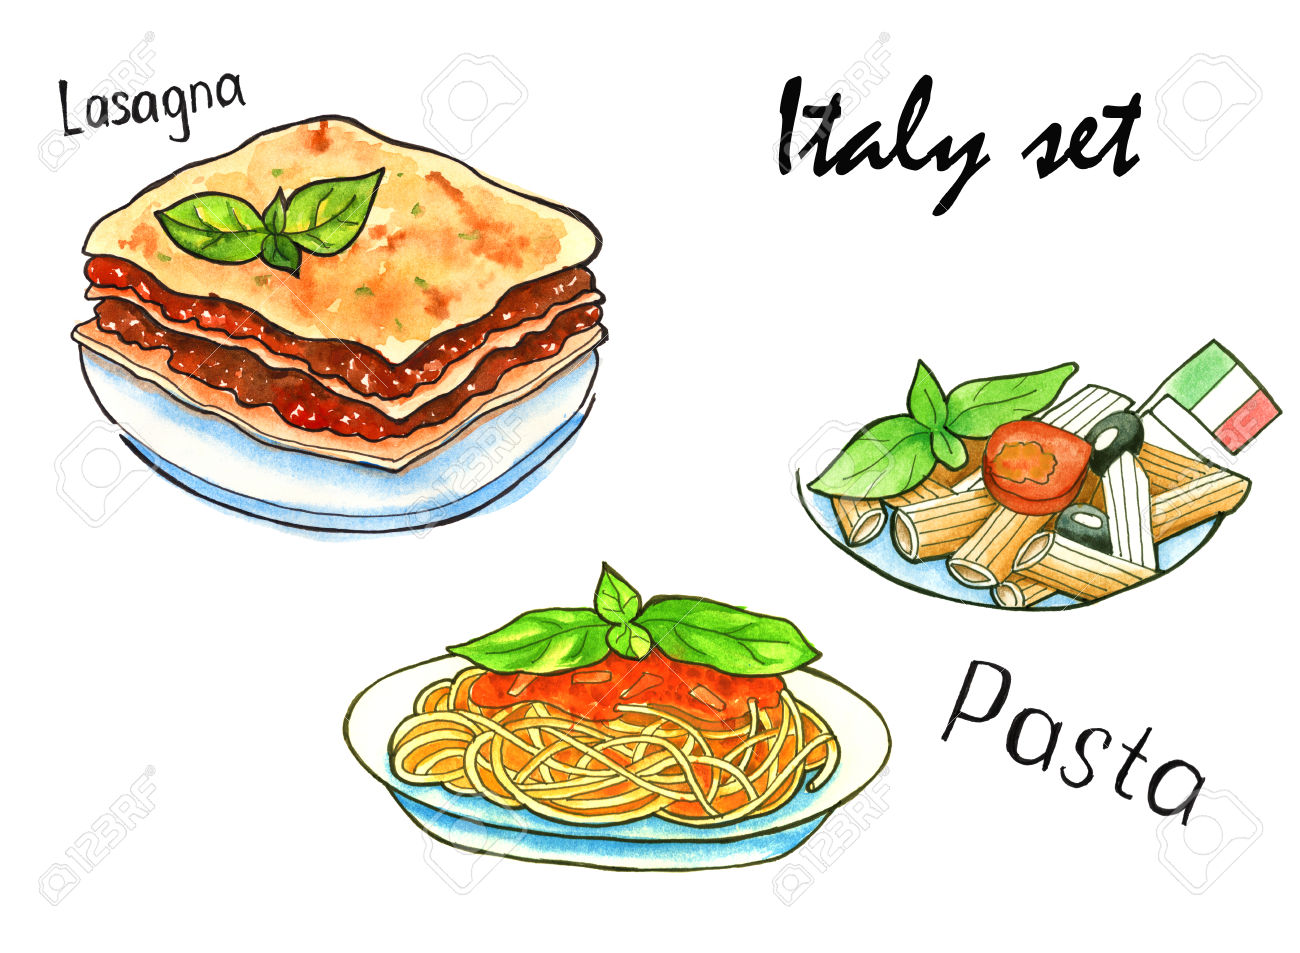 Italian Restaurant Near Me: Collection Of Lasagna Clipart